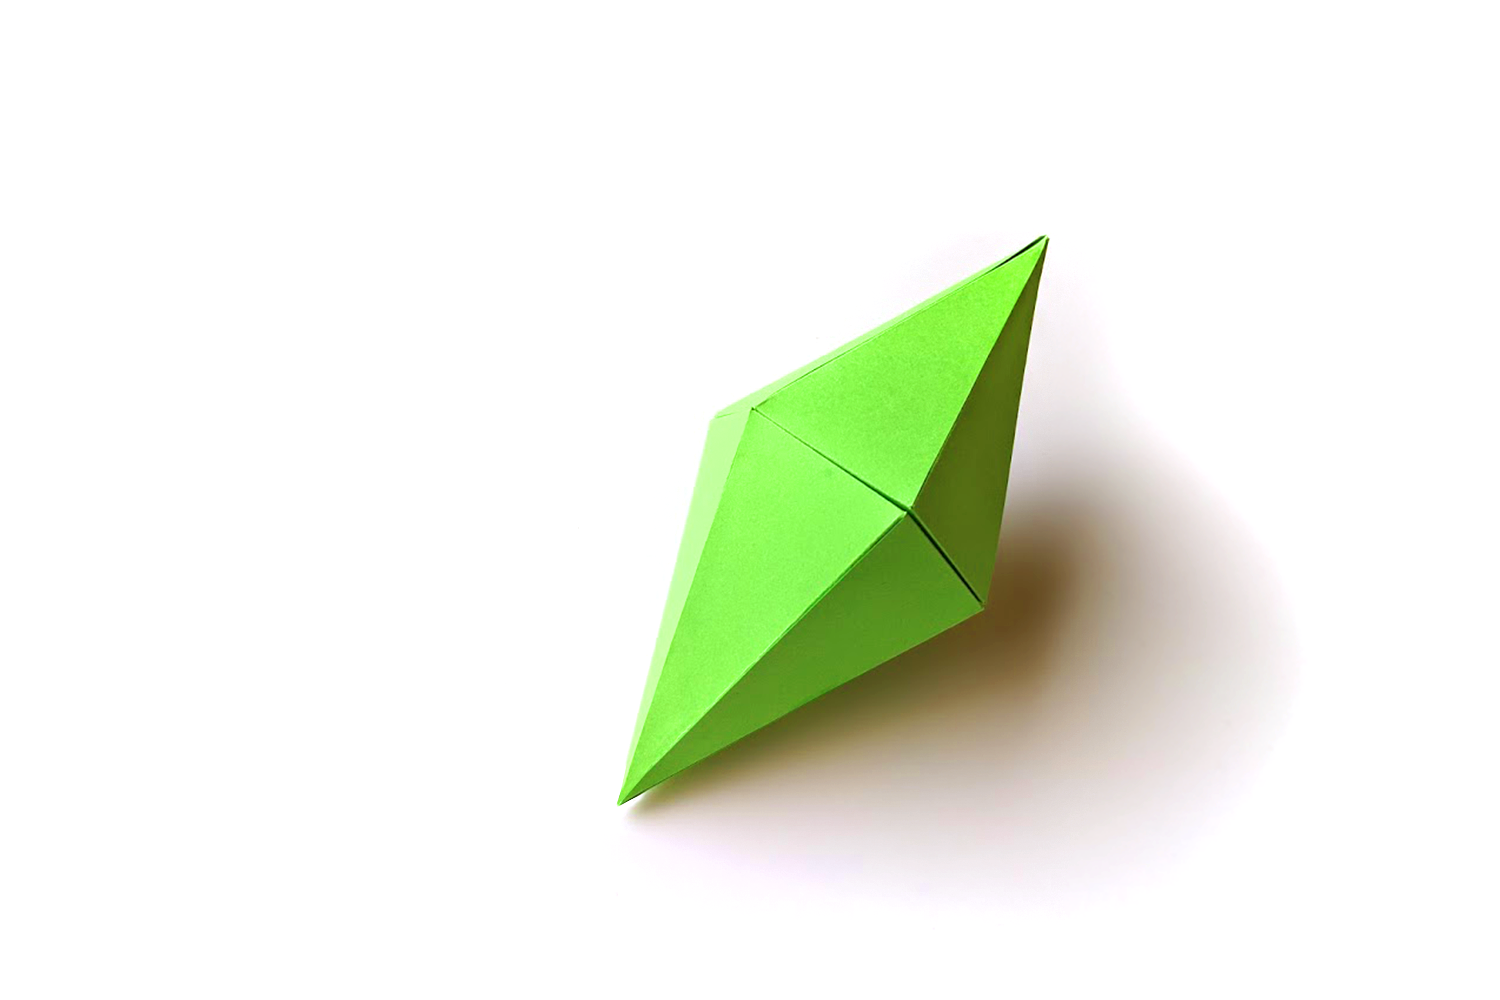 12 Sided 3d Gem Svg And Pdf Graphic By Risarocksit Creative